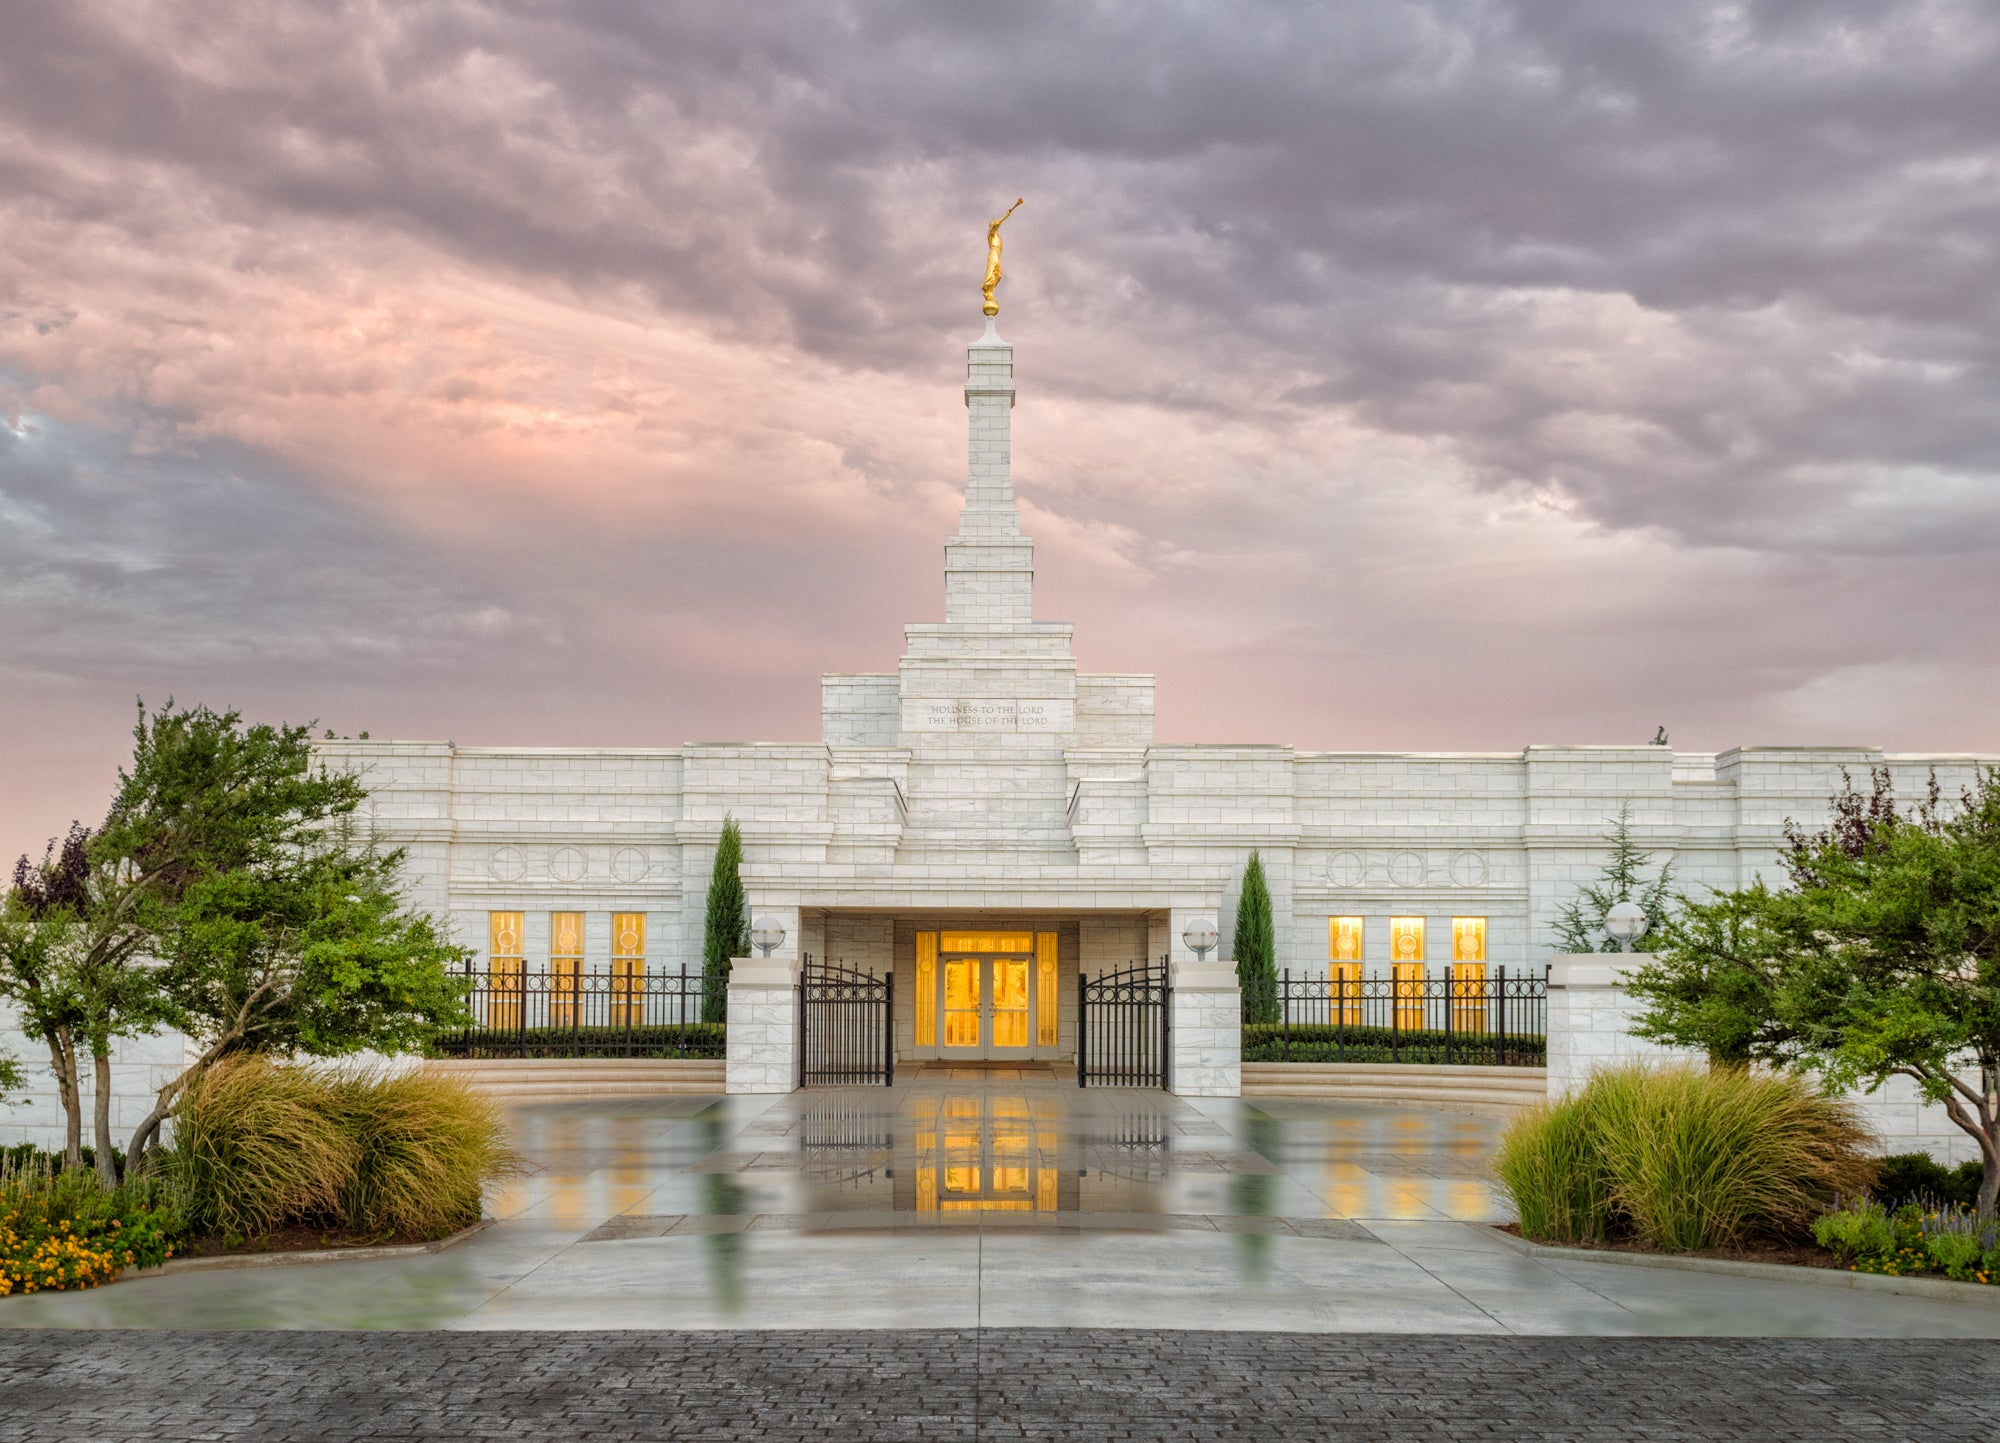 Oklahoma City Temple - Covenant Path Series by Robert A Boyd